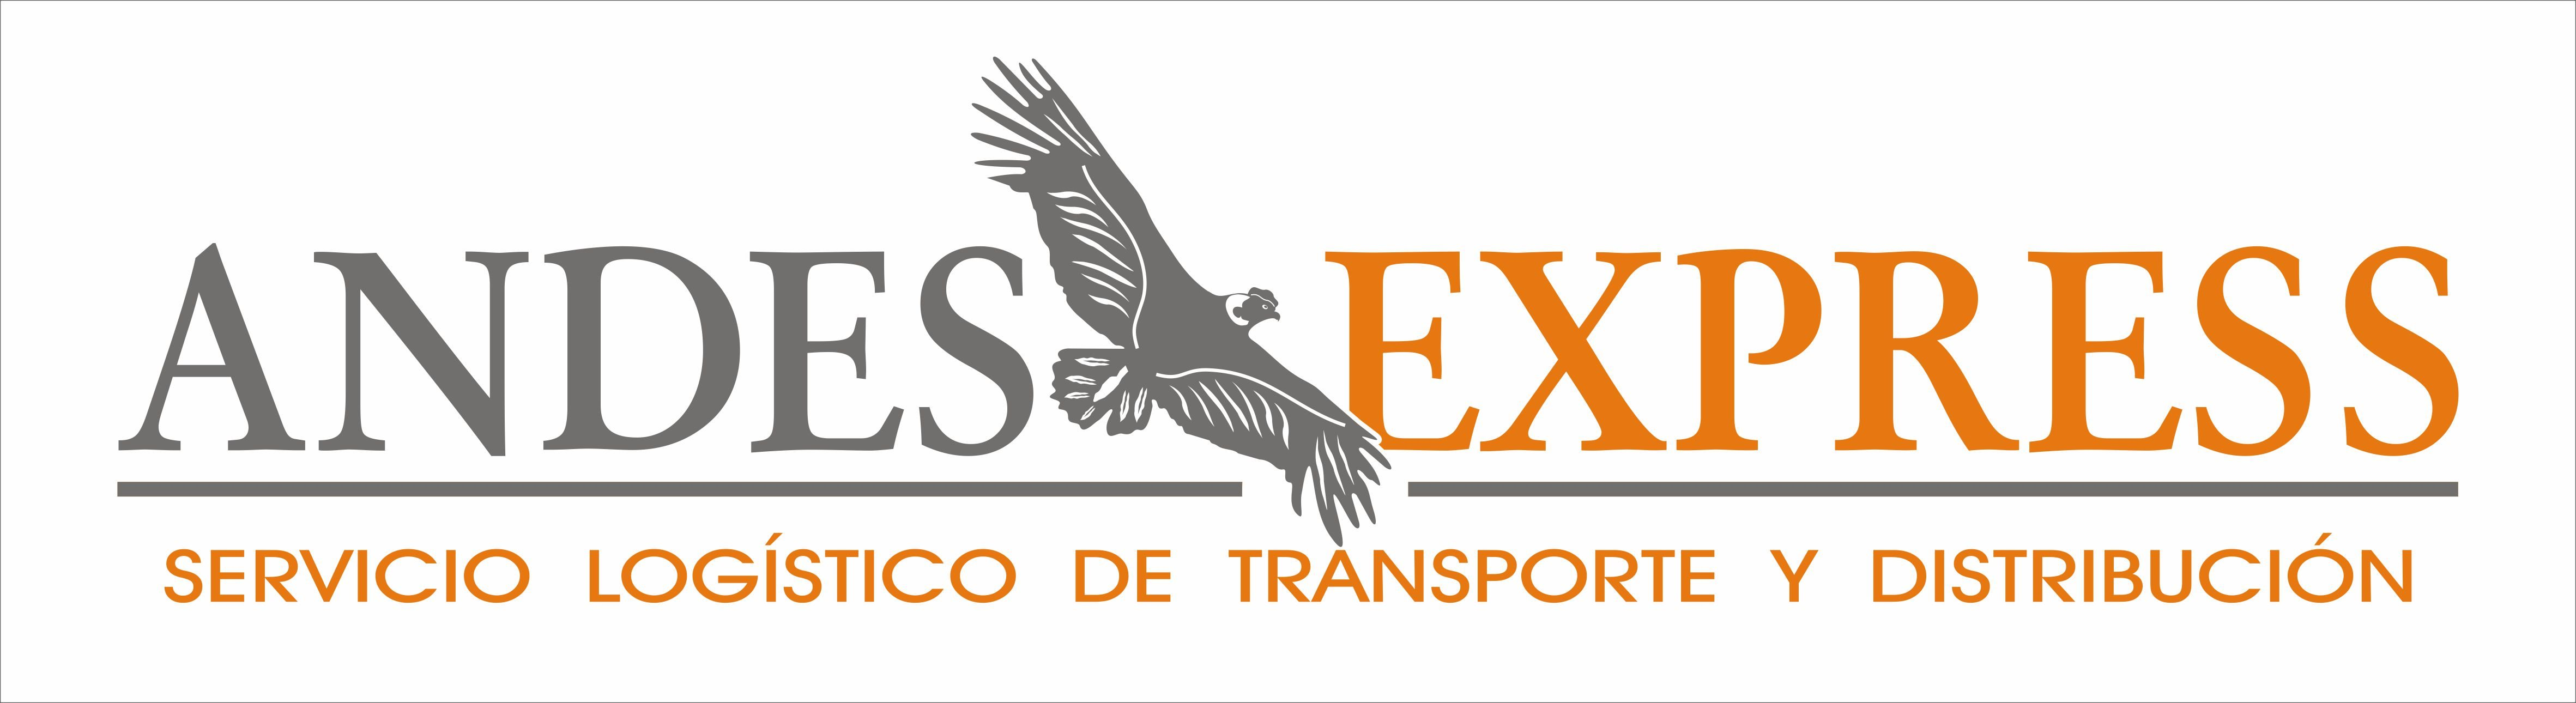 ANDES EXPRESS S.A.C.